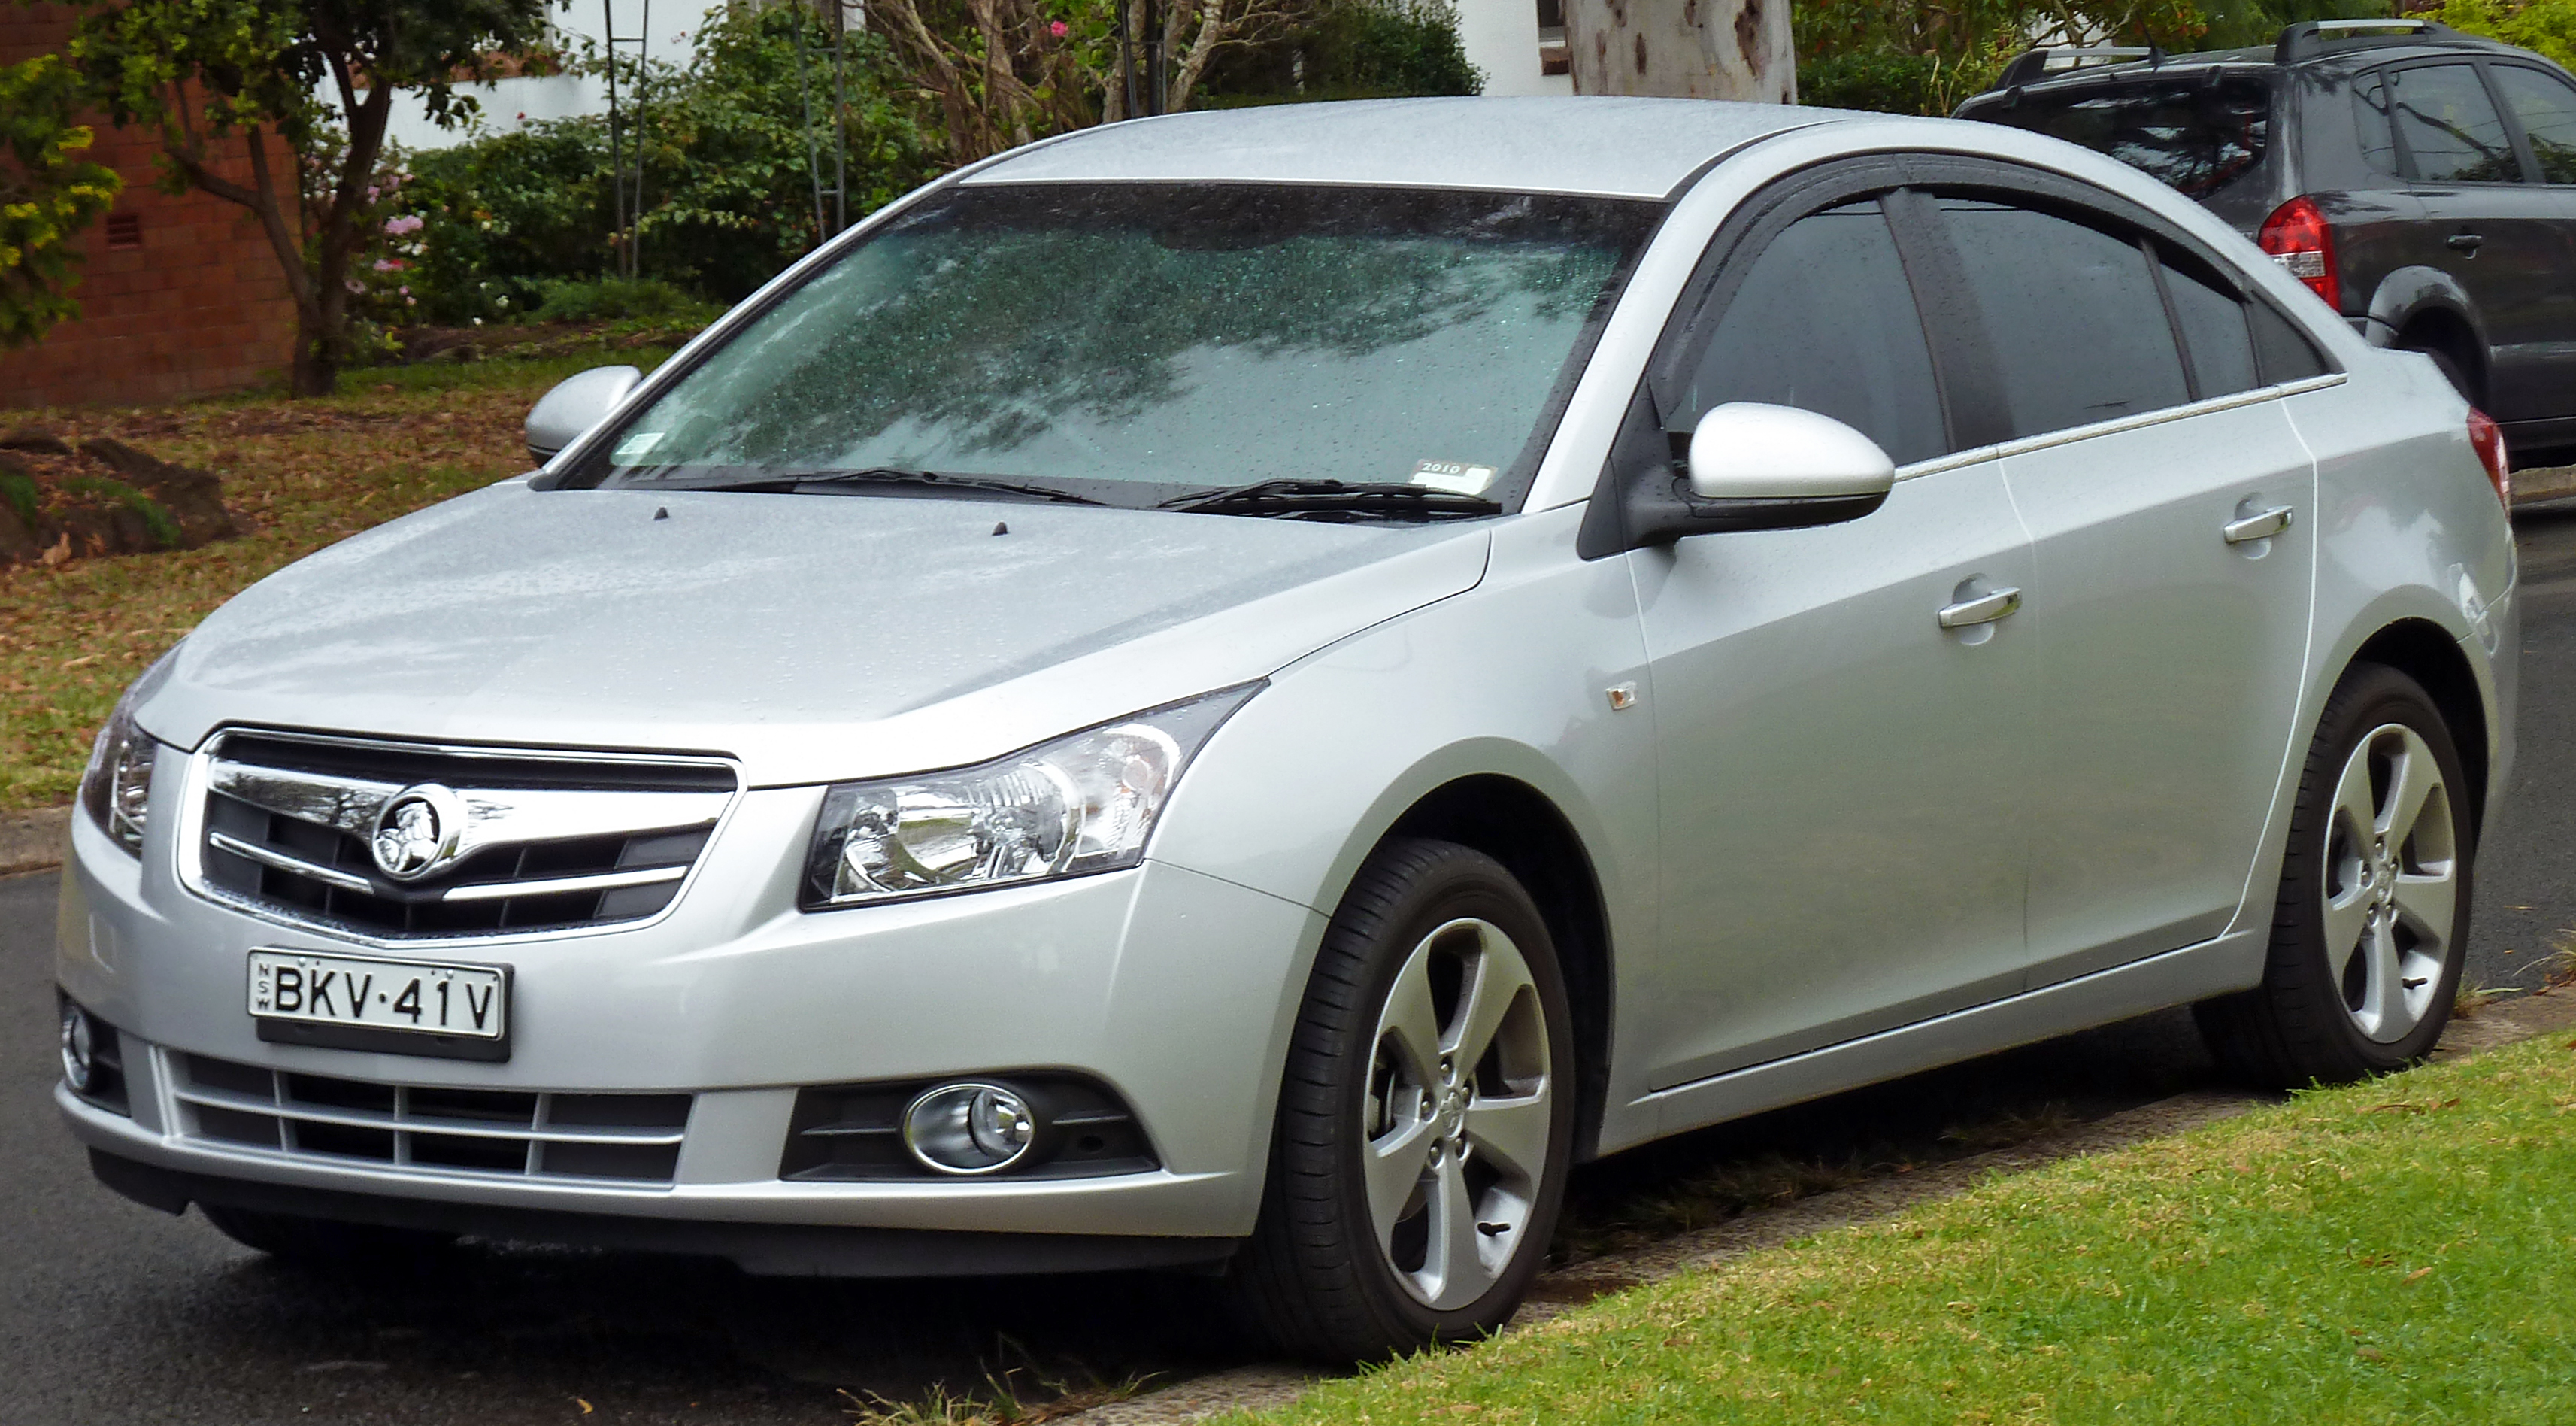 file 2009 2010 holden jg cruze cdx sedan wikimedia commons. Black Bedroom Furniture Sets. Home Design Ideas